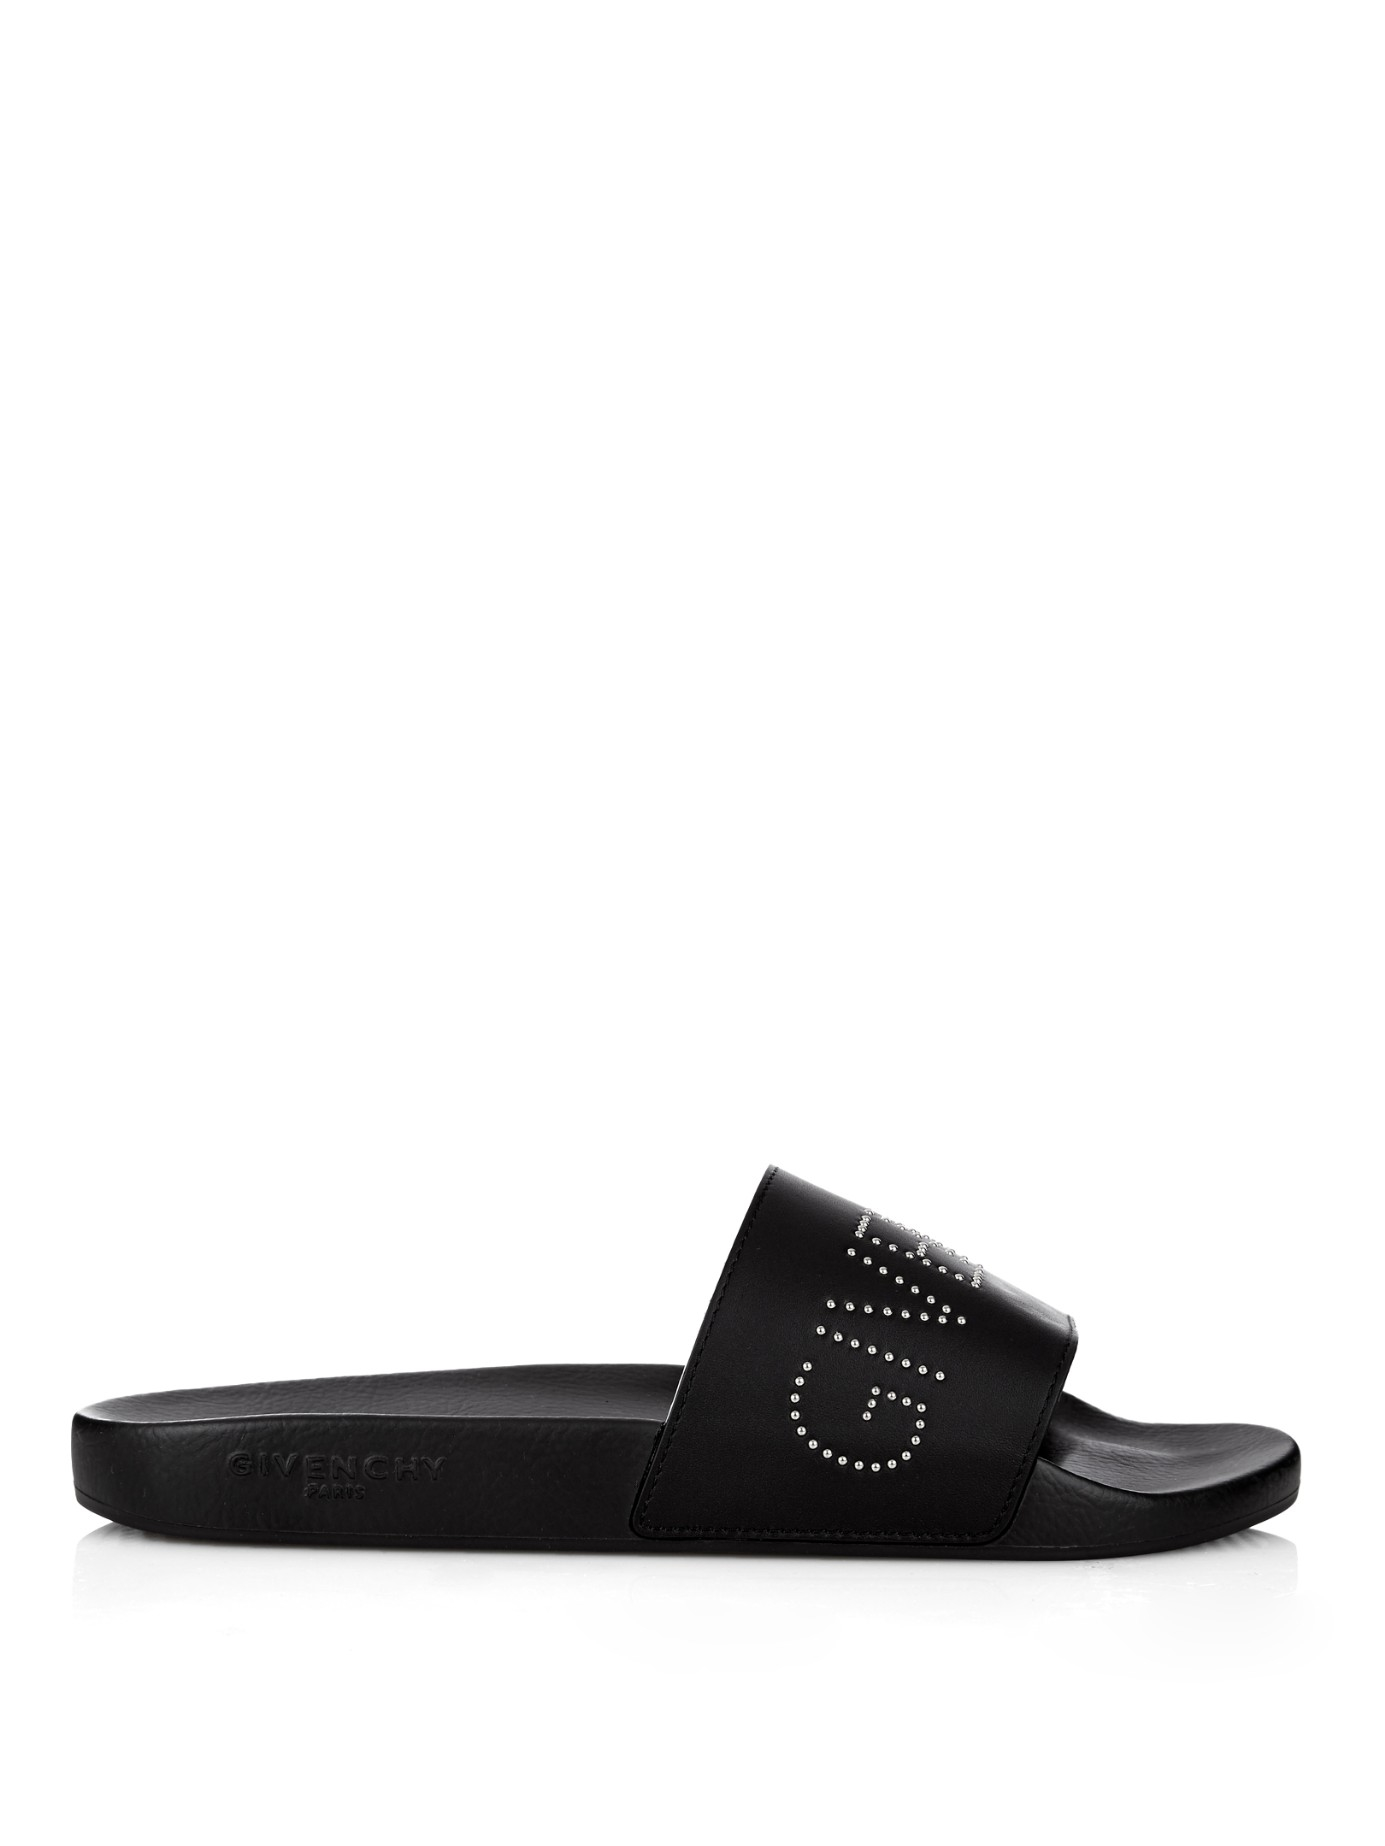 Givenchy Rubber Pool Slide Sandals In Black For Men Lyst